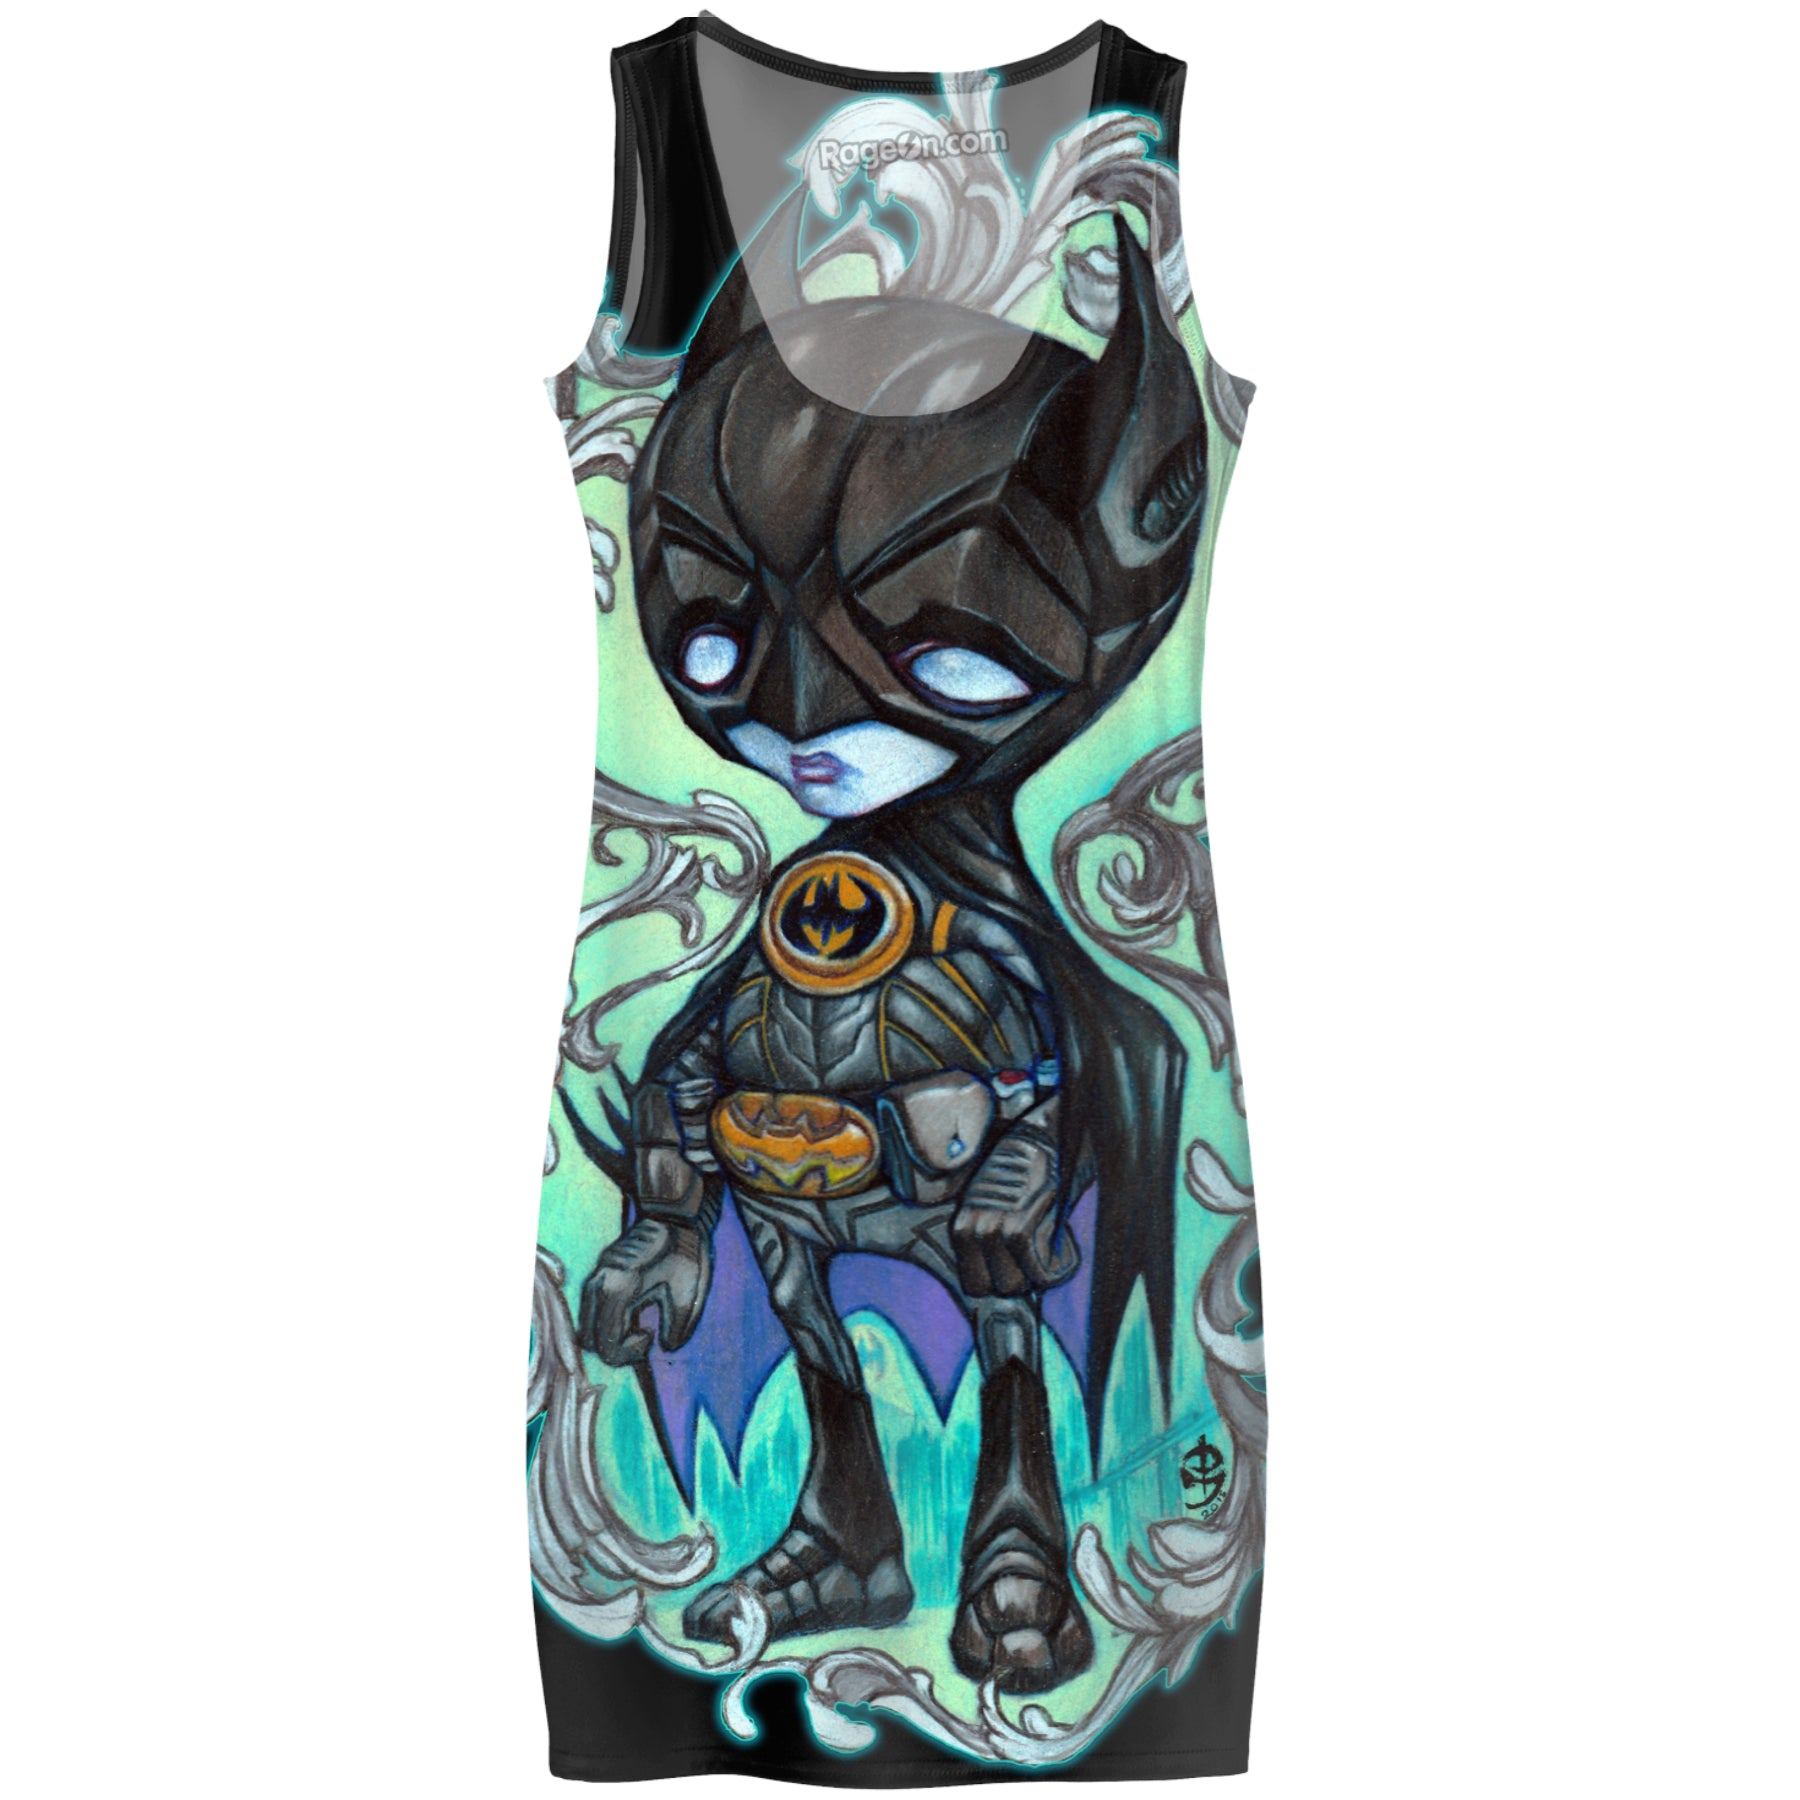 Batboy Dress